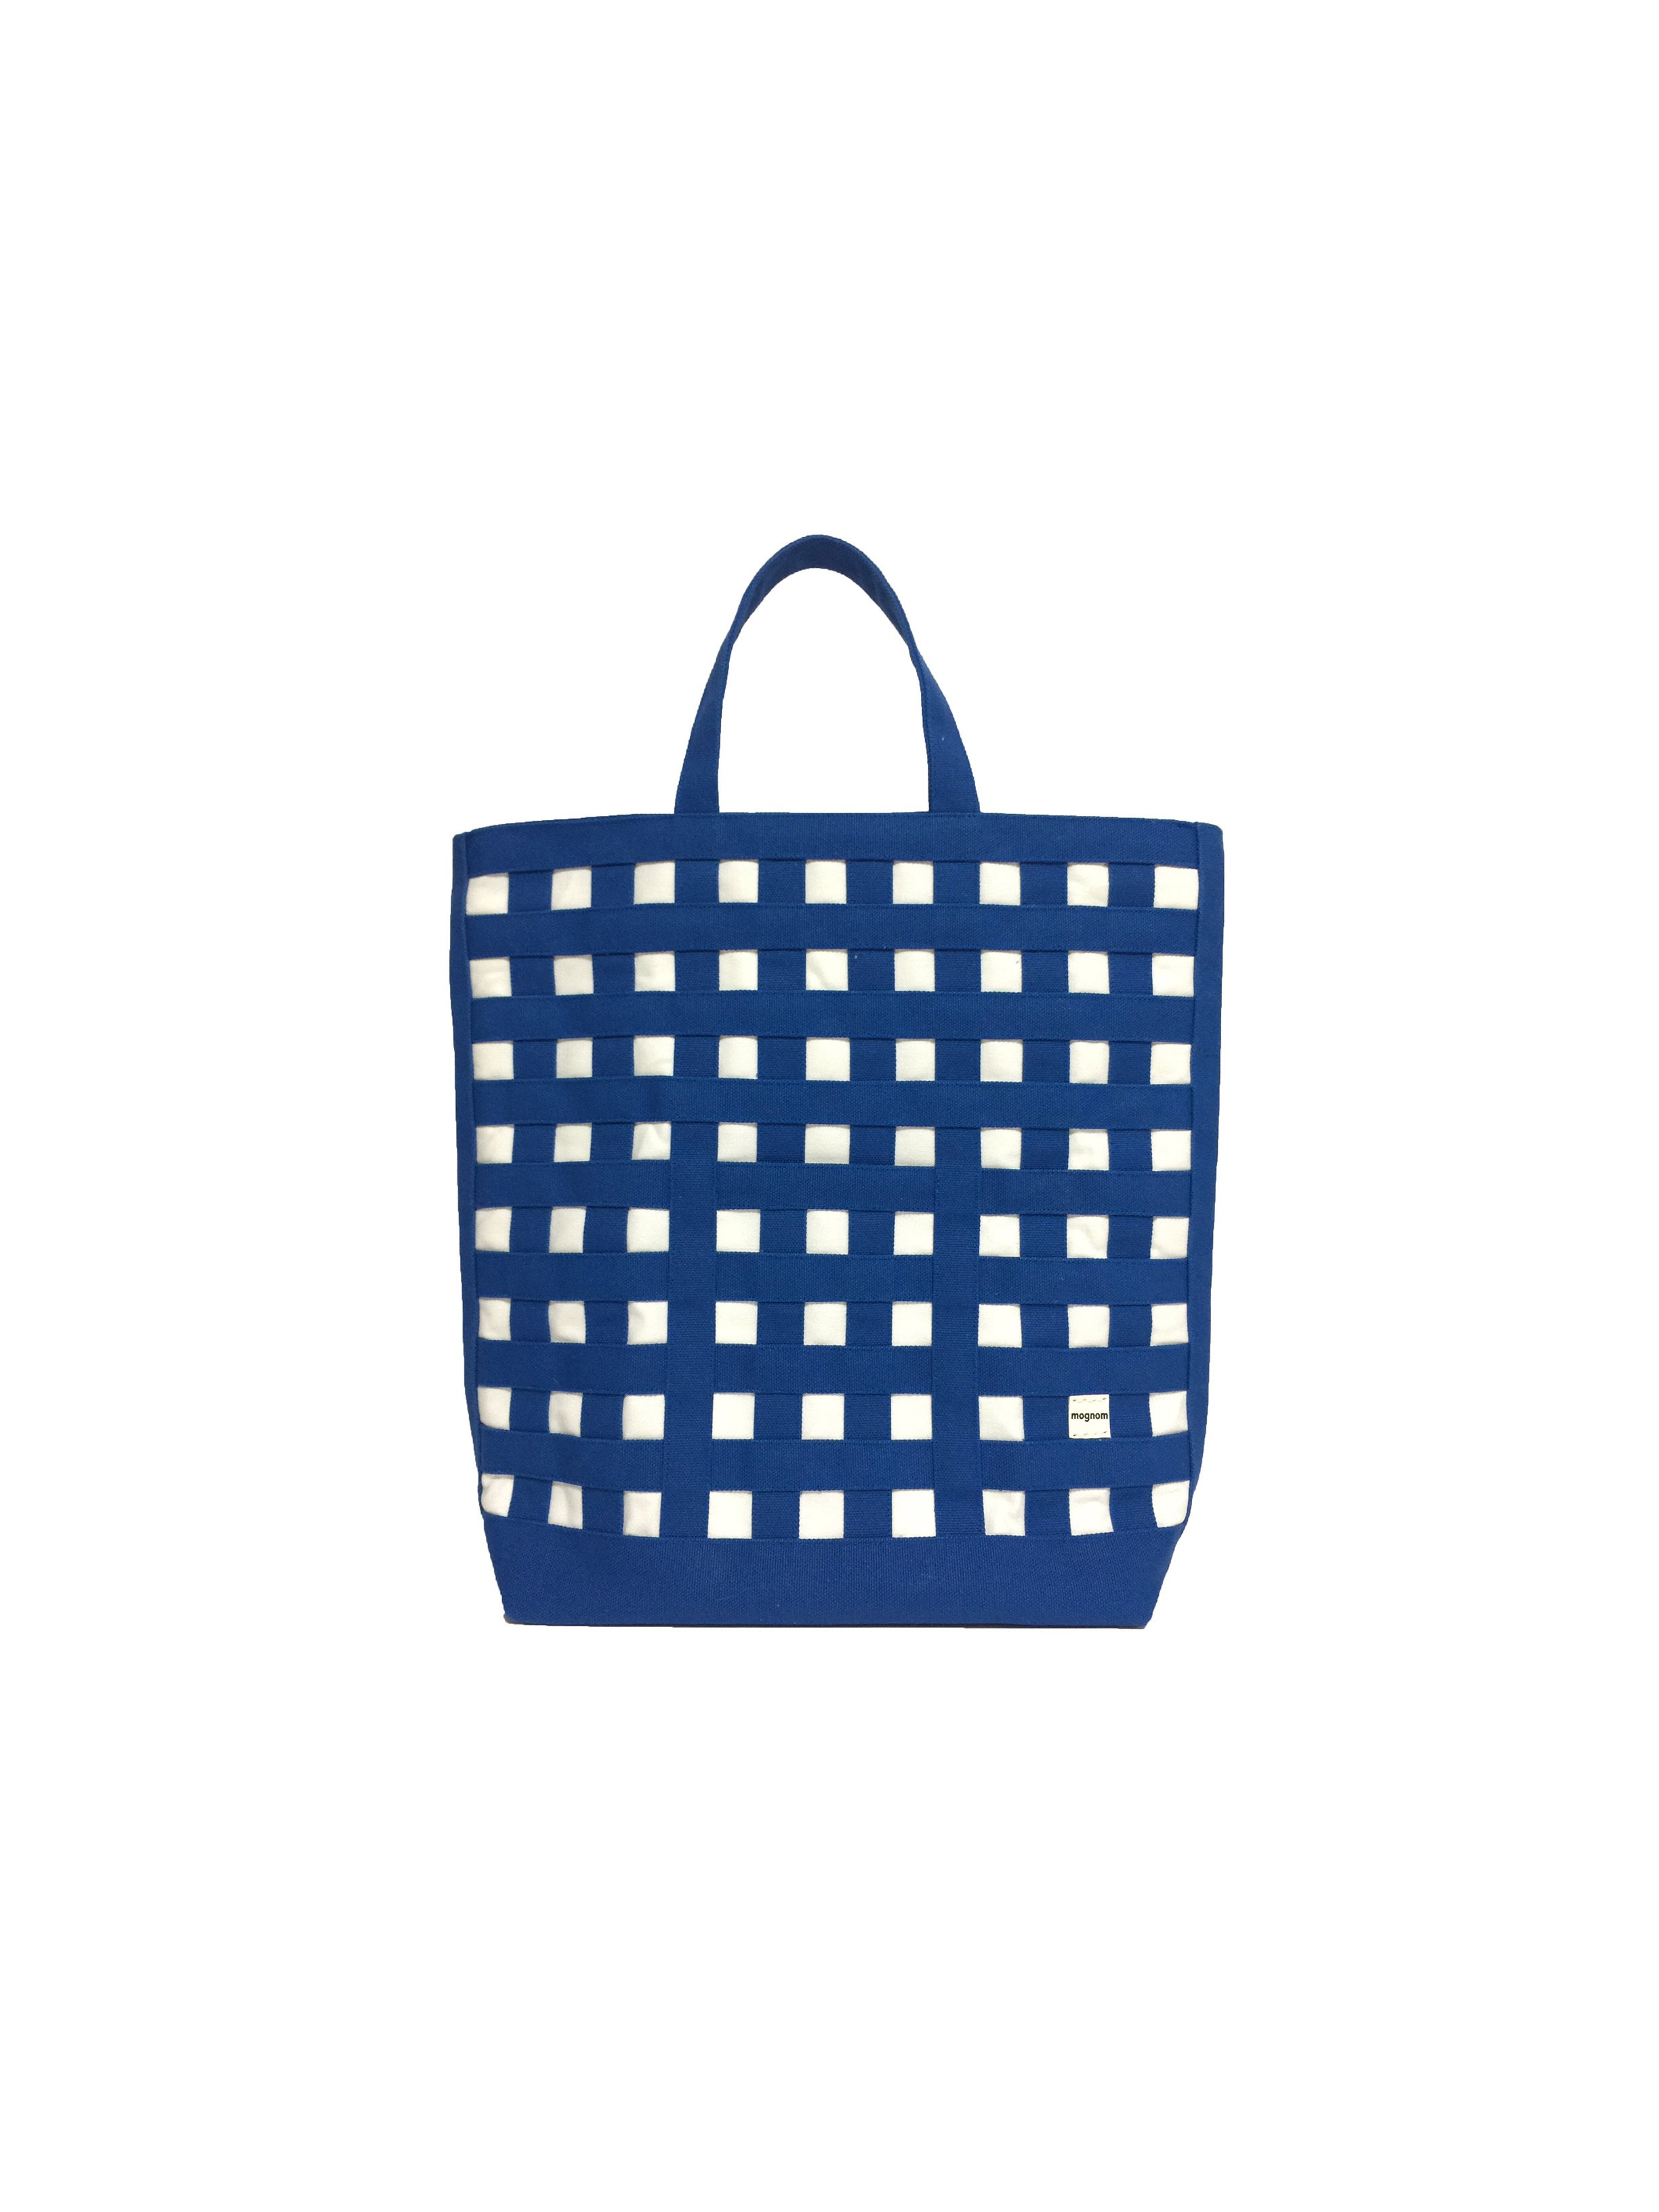 gingham tote ギンガムトート carrés  カレ 20-72  カラー:ブルー